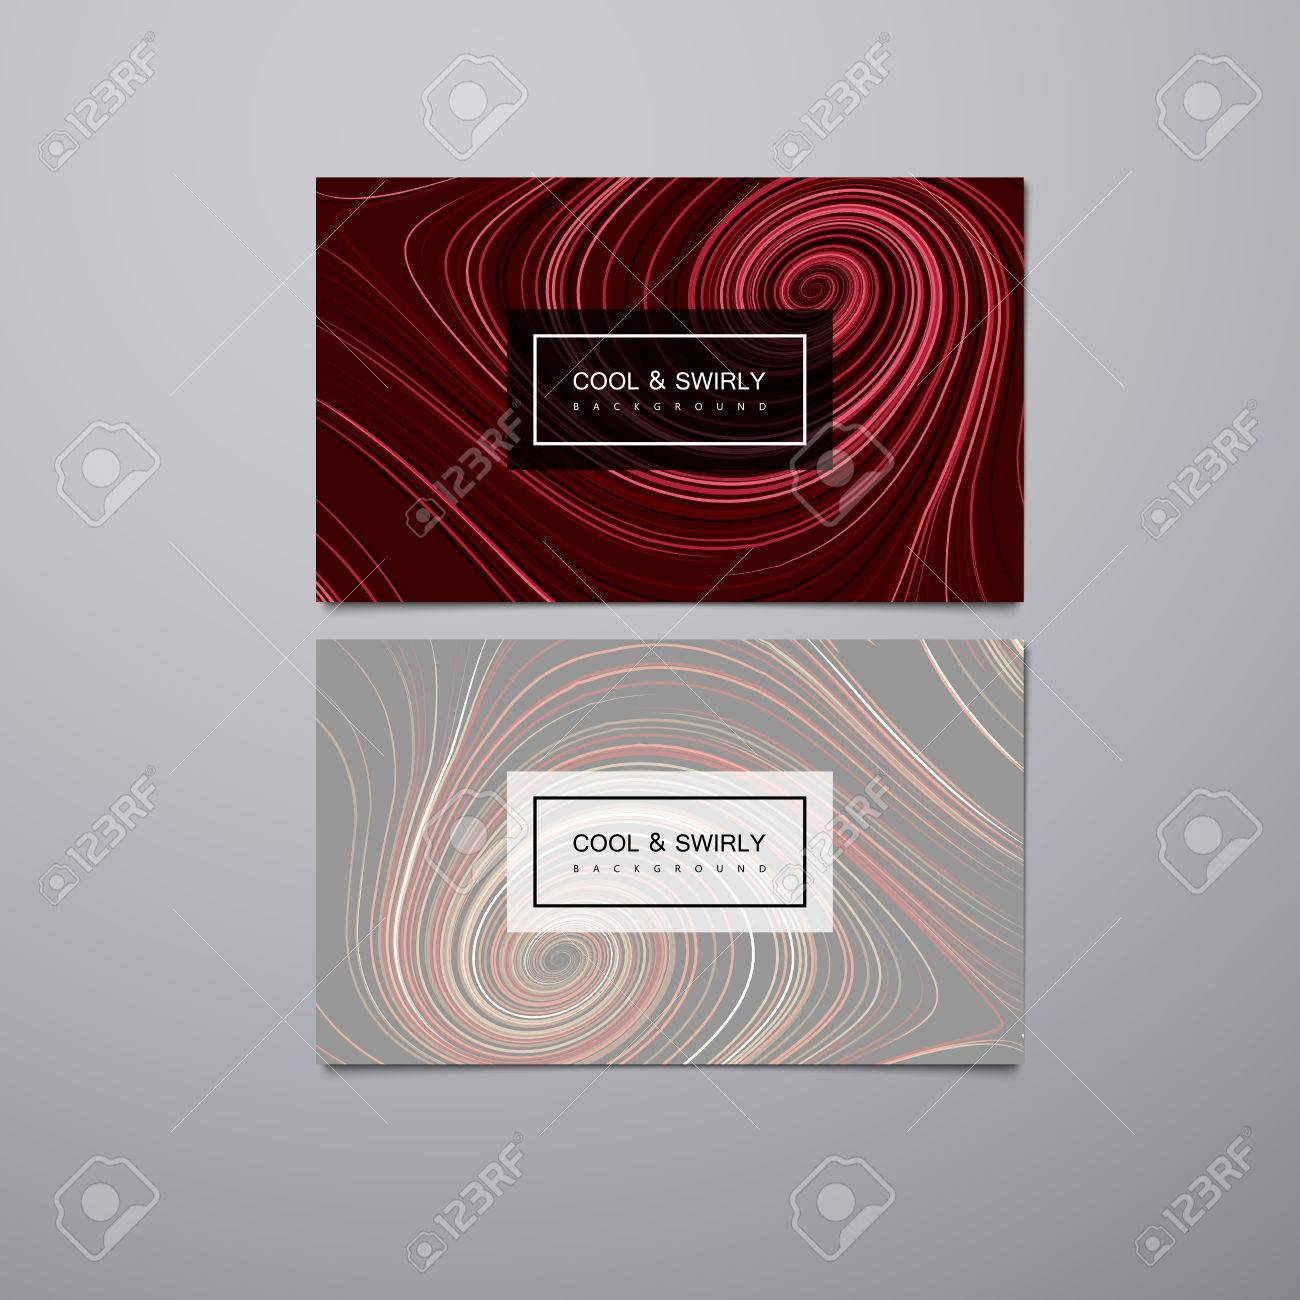 Greeting Invitation Or Business Cards Design Template With Swirled Stripes Vector Illustration Of Swirled And Curled Stripes Background Marble Or